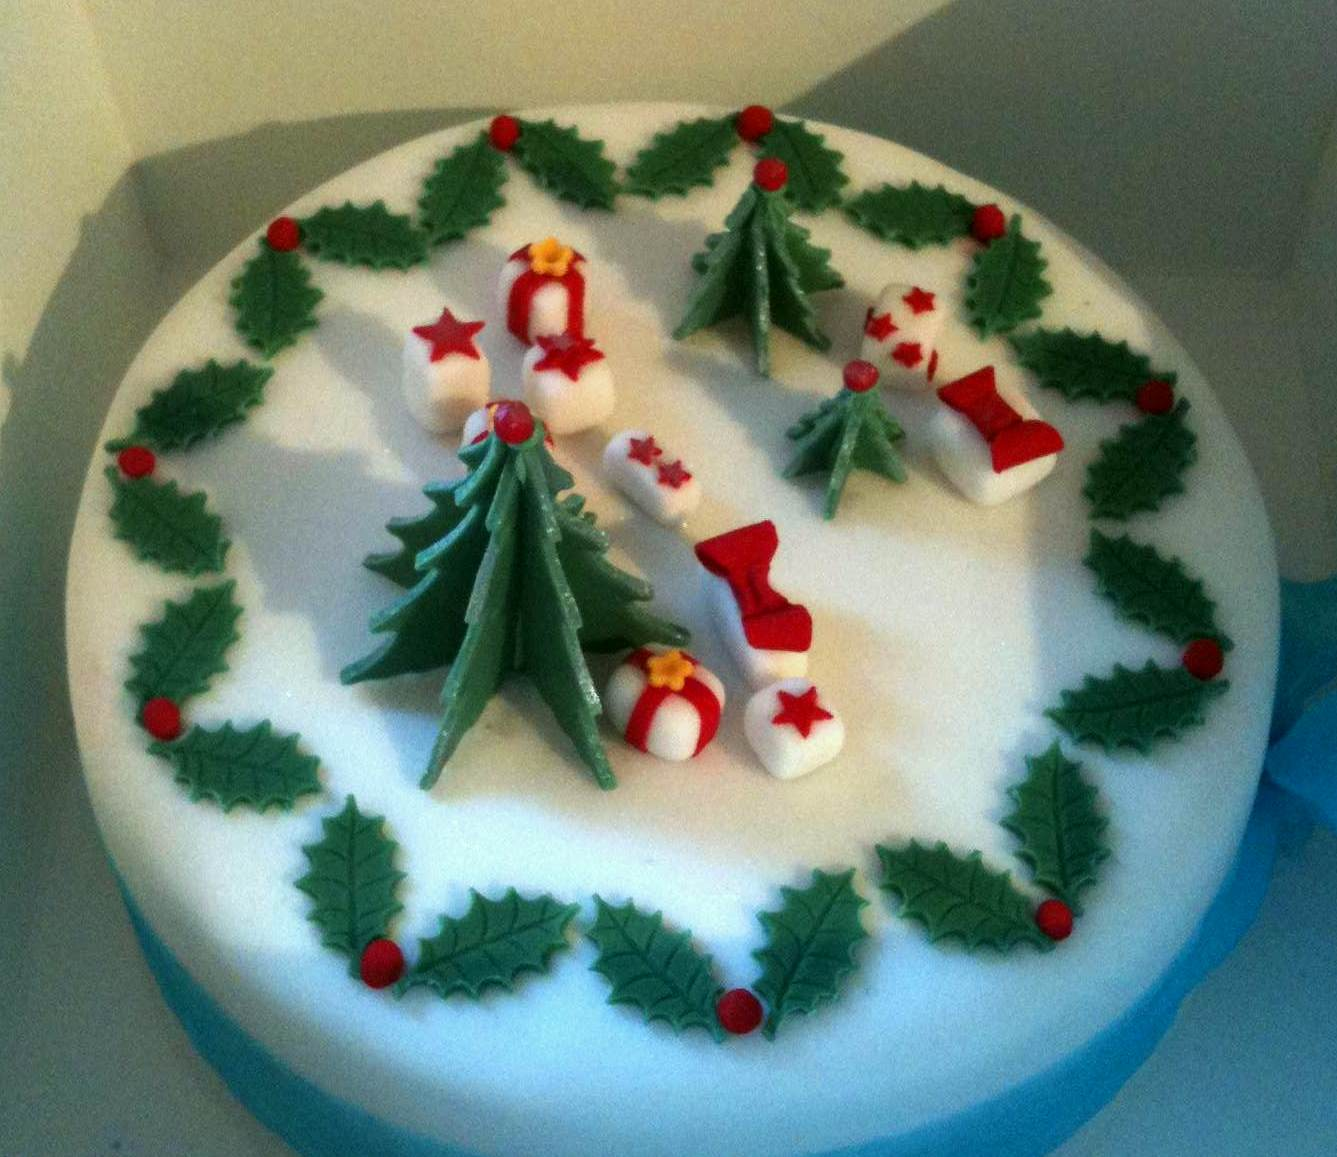 Images For Christmas Cake Decorations : PicturesPool: Christmas Cakes Pictures Christmas Cakes ...